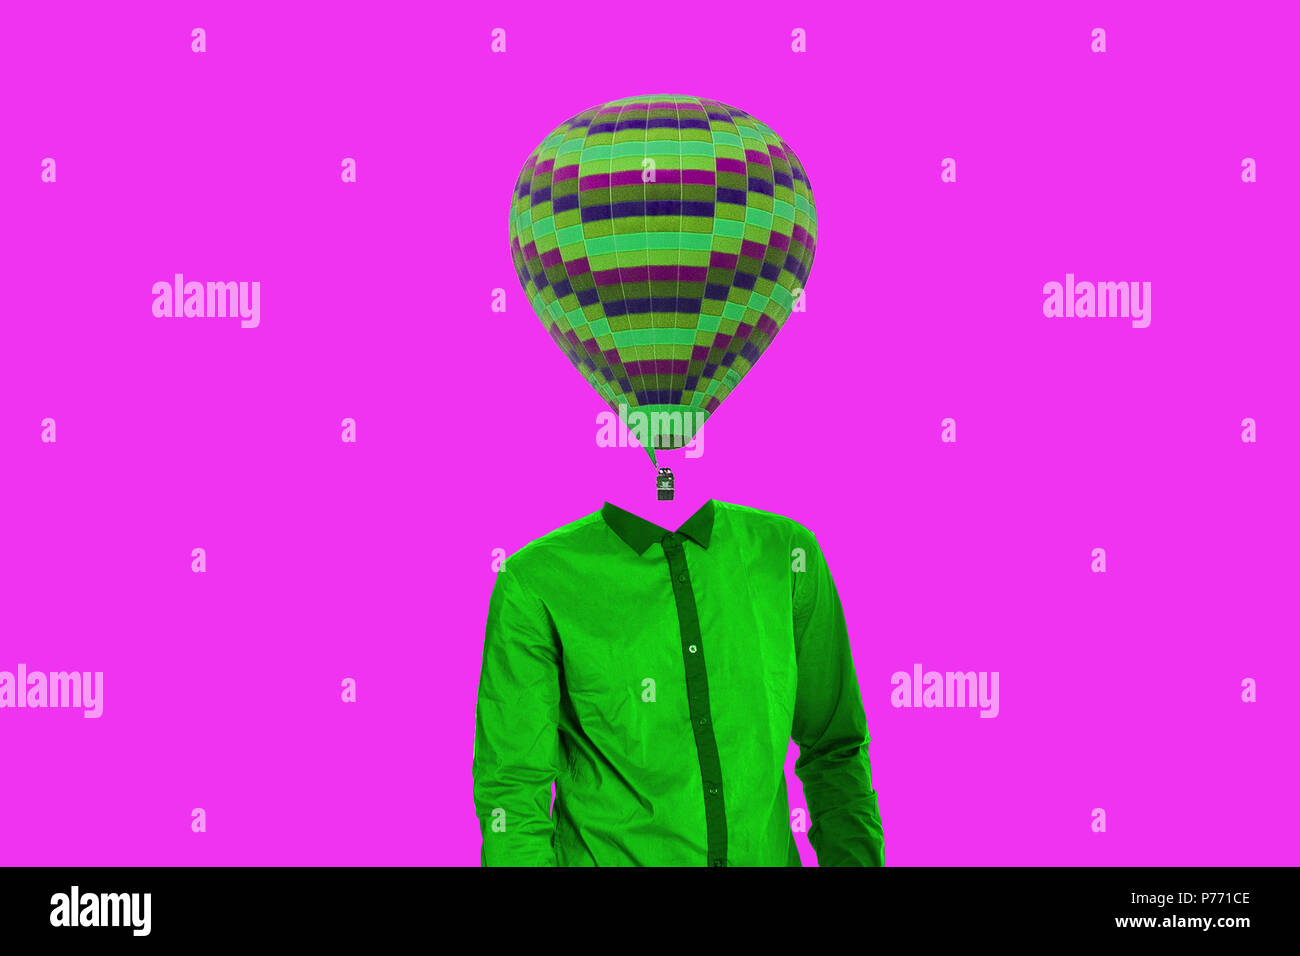 Surrealistic minimal concept. A balloon instead of a human head. Minimalism and surrealism - Stock Image